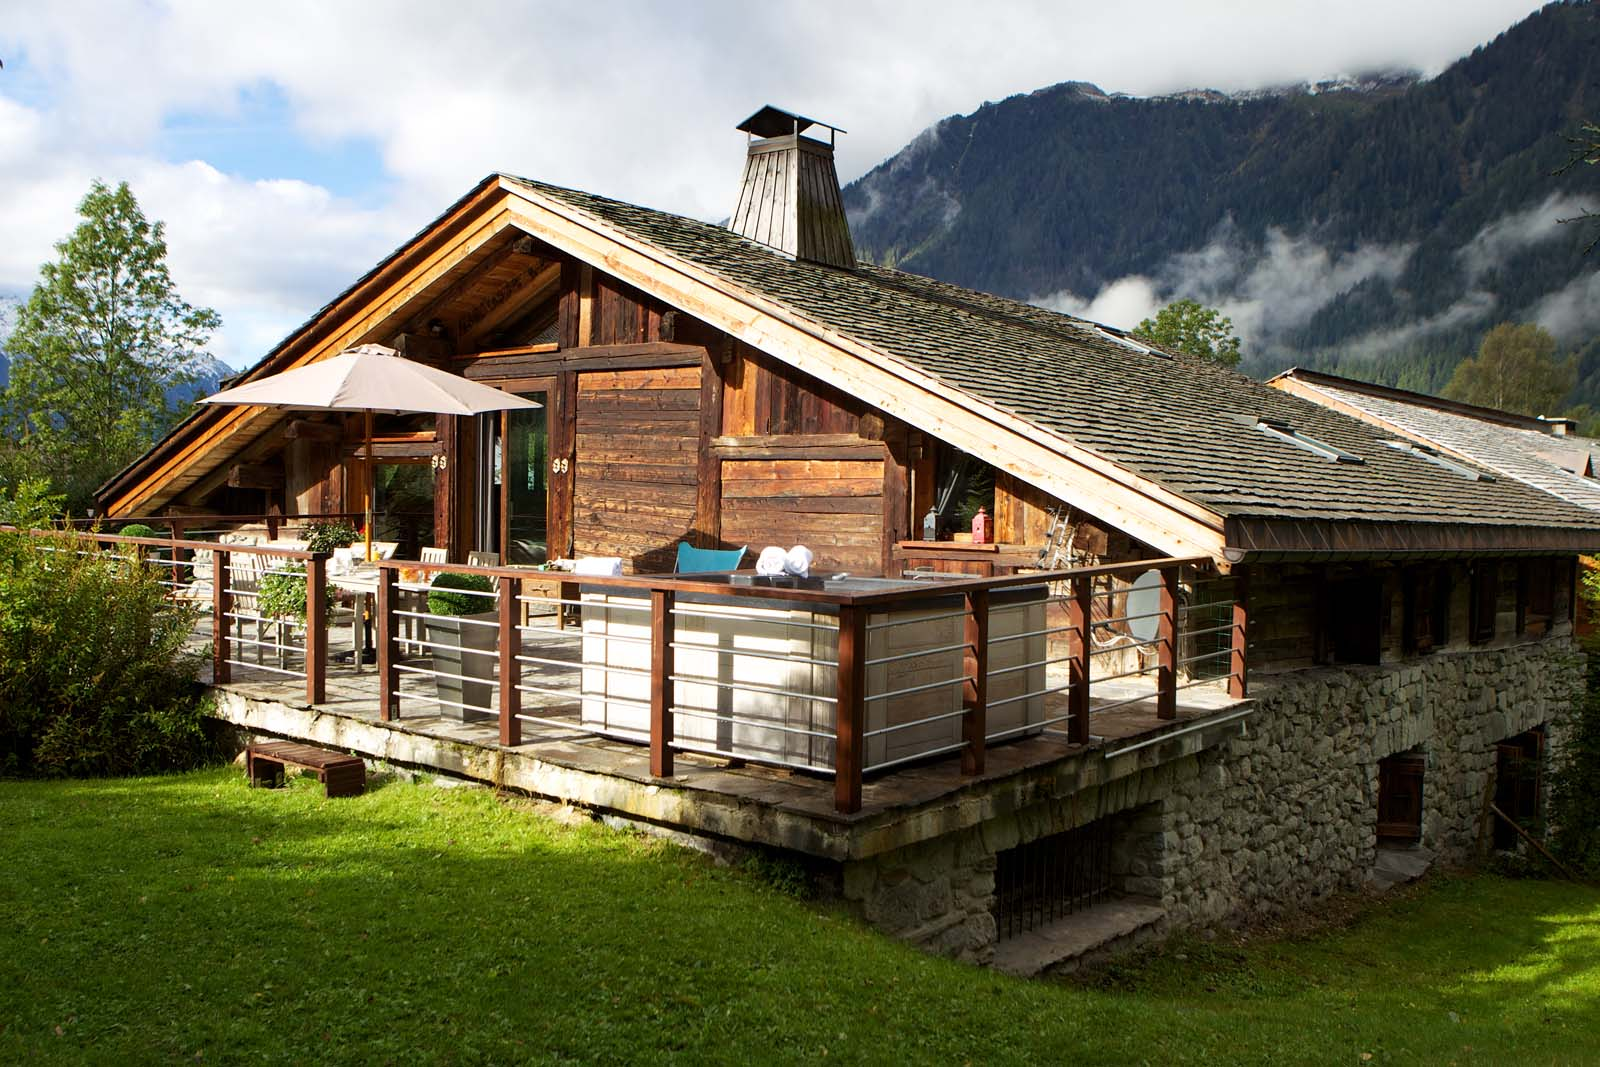 chalet la ferme du bois in chamonix by skiboutique. Black Bedroom Furniture Sets. Home Design Ideas